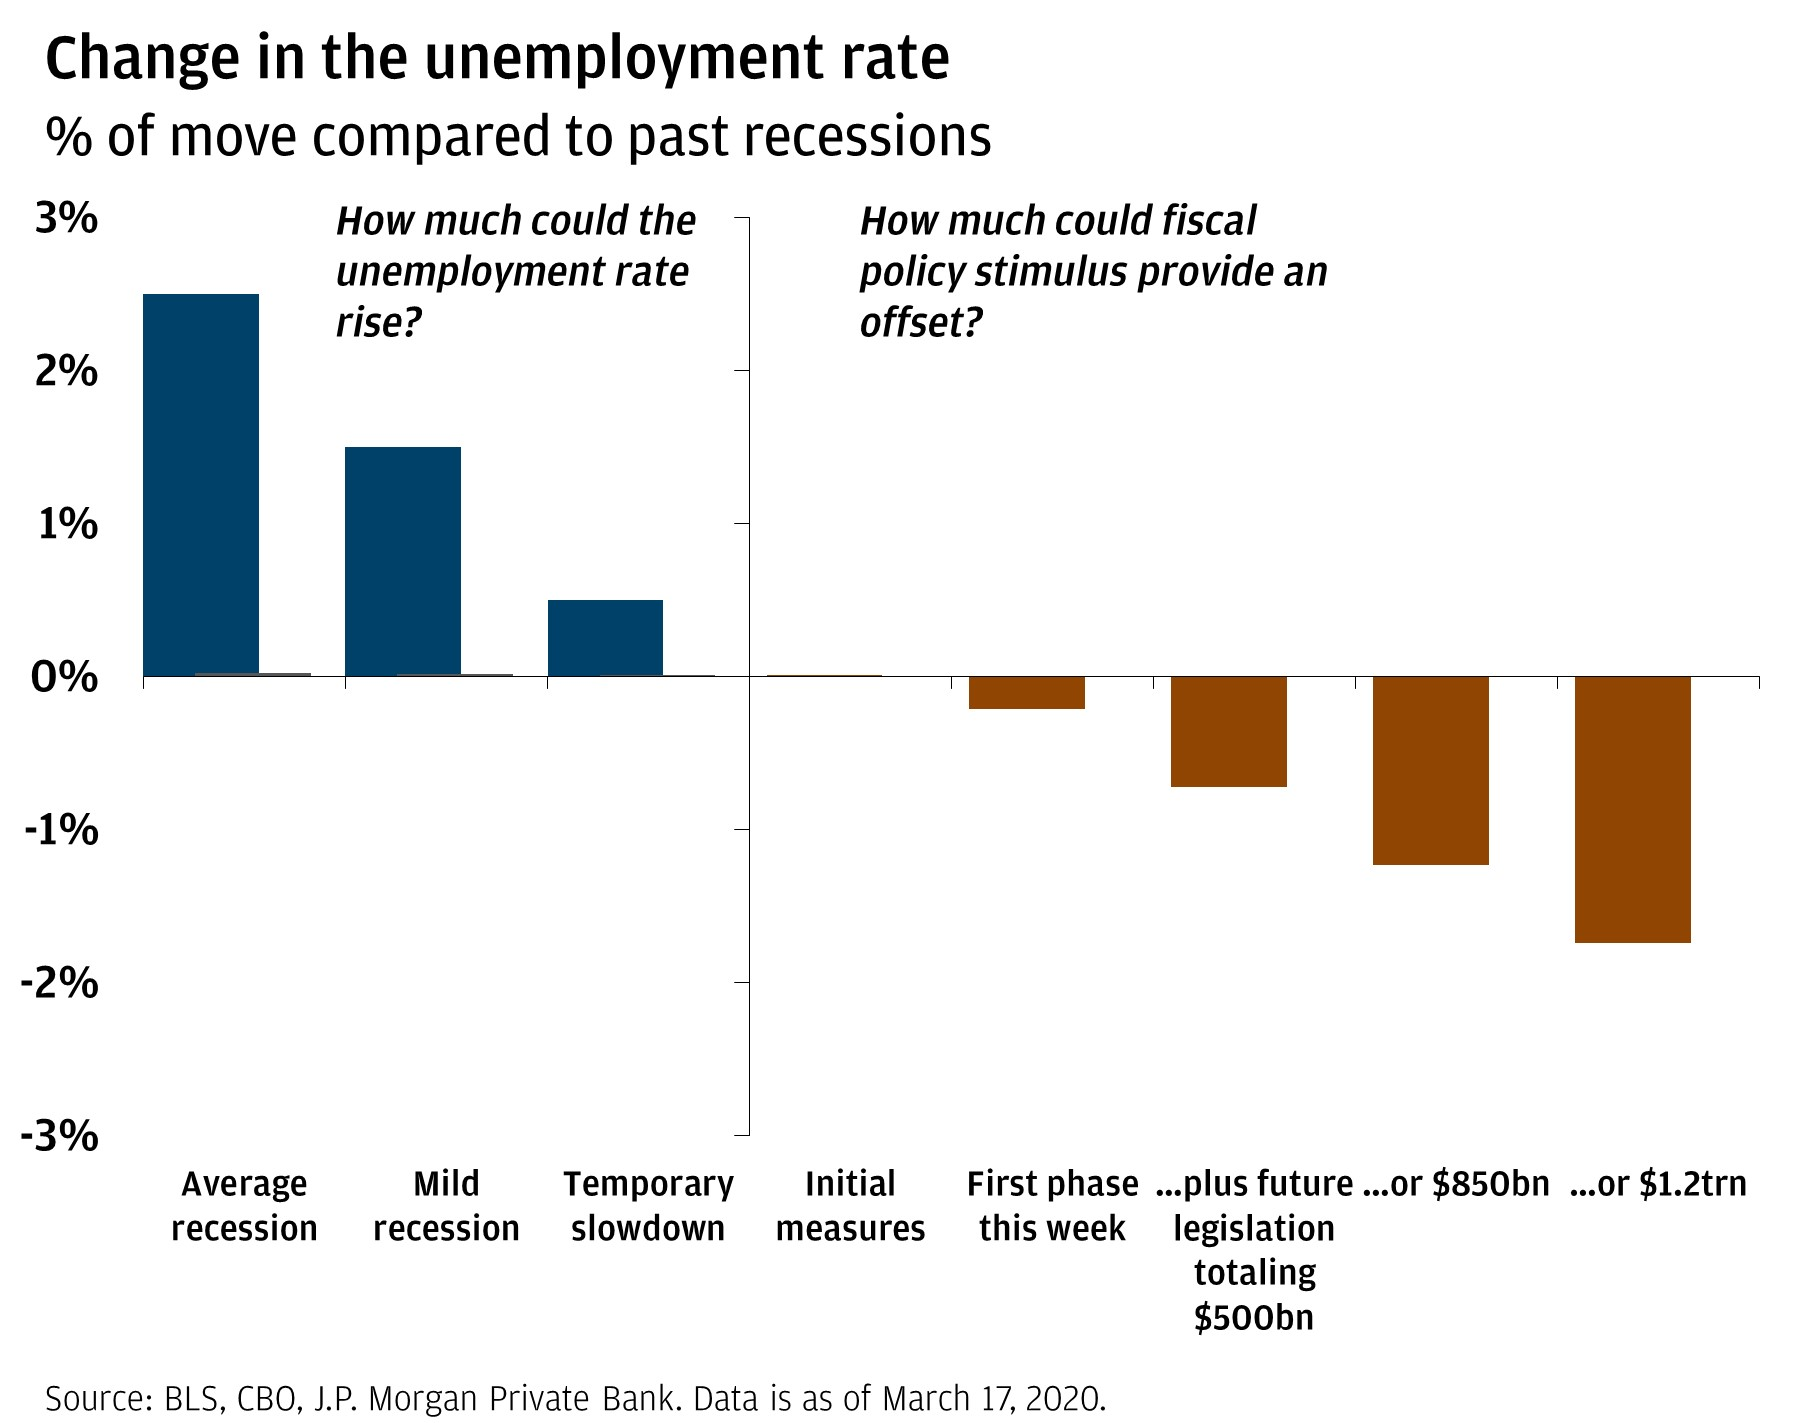 Bar chart shows change in unemployment rate (in percentages) across multiple scenarios—average recession, mild recession, temporary slowdown, initial measures of fiscal policy, first phase of fiscal policy this week, future legislation of fiscal policy totaling $500 billion or $850 billion, or $1.2 trillion.